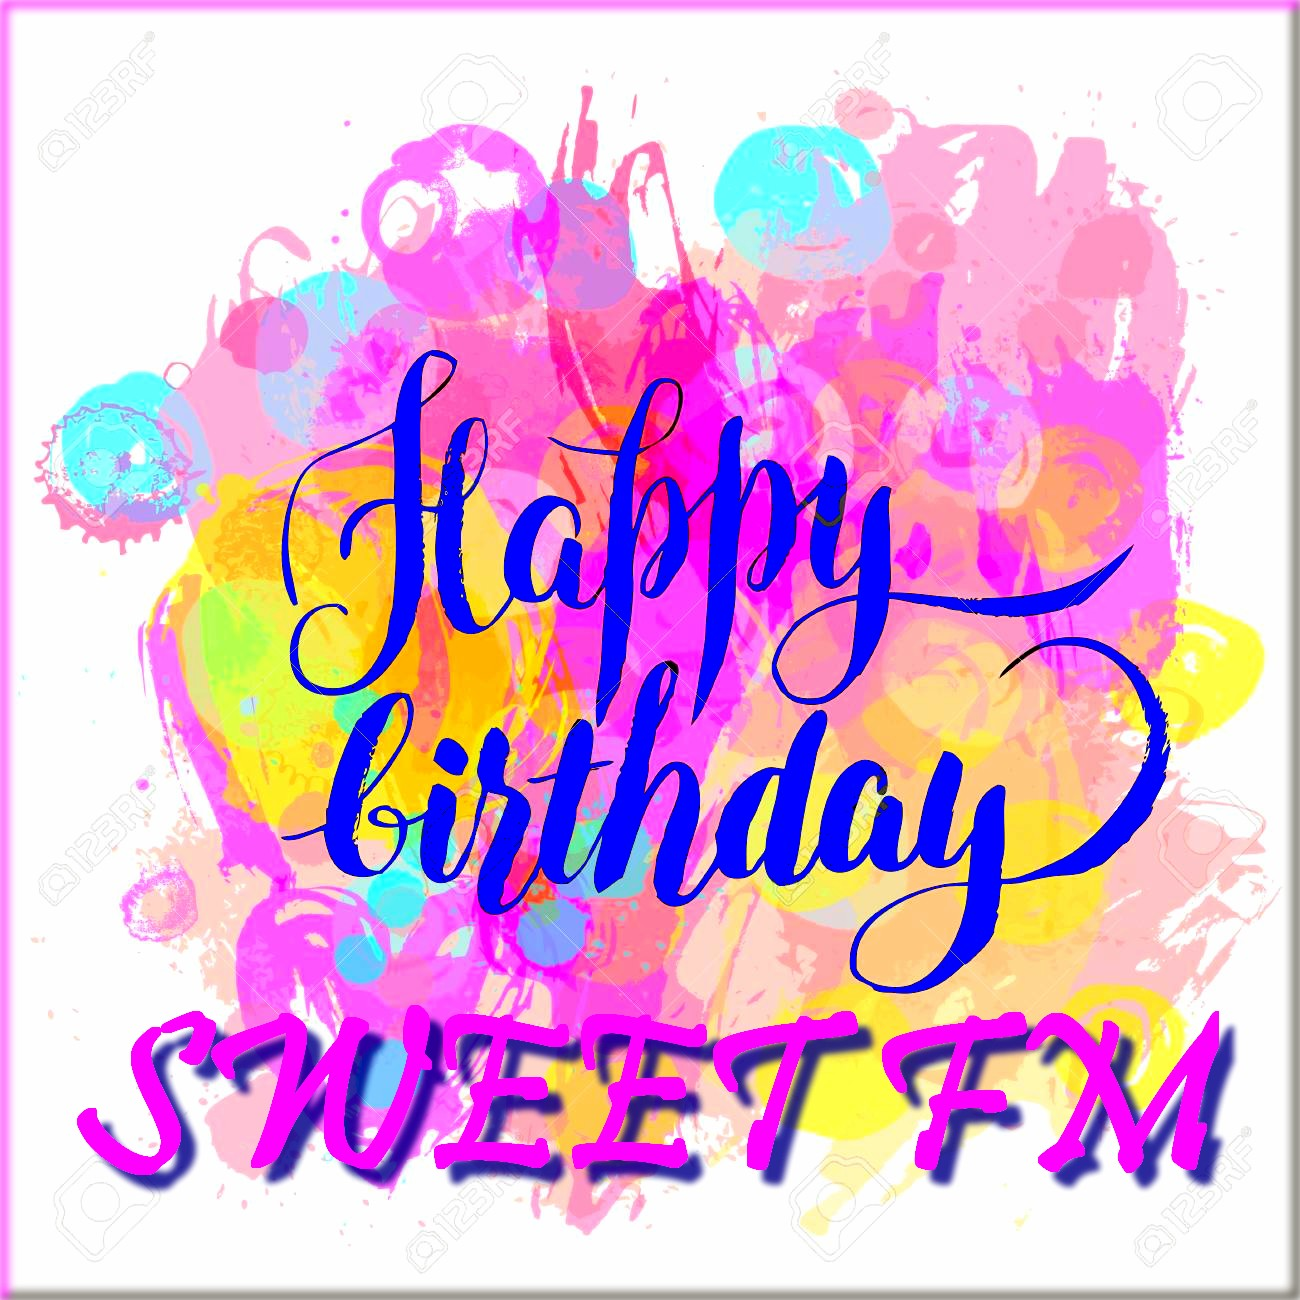 happy birthday sweetfm